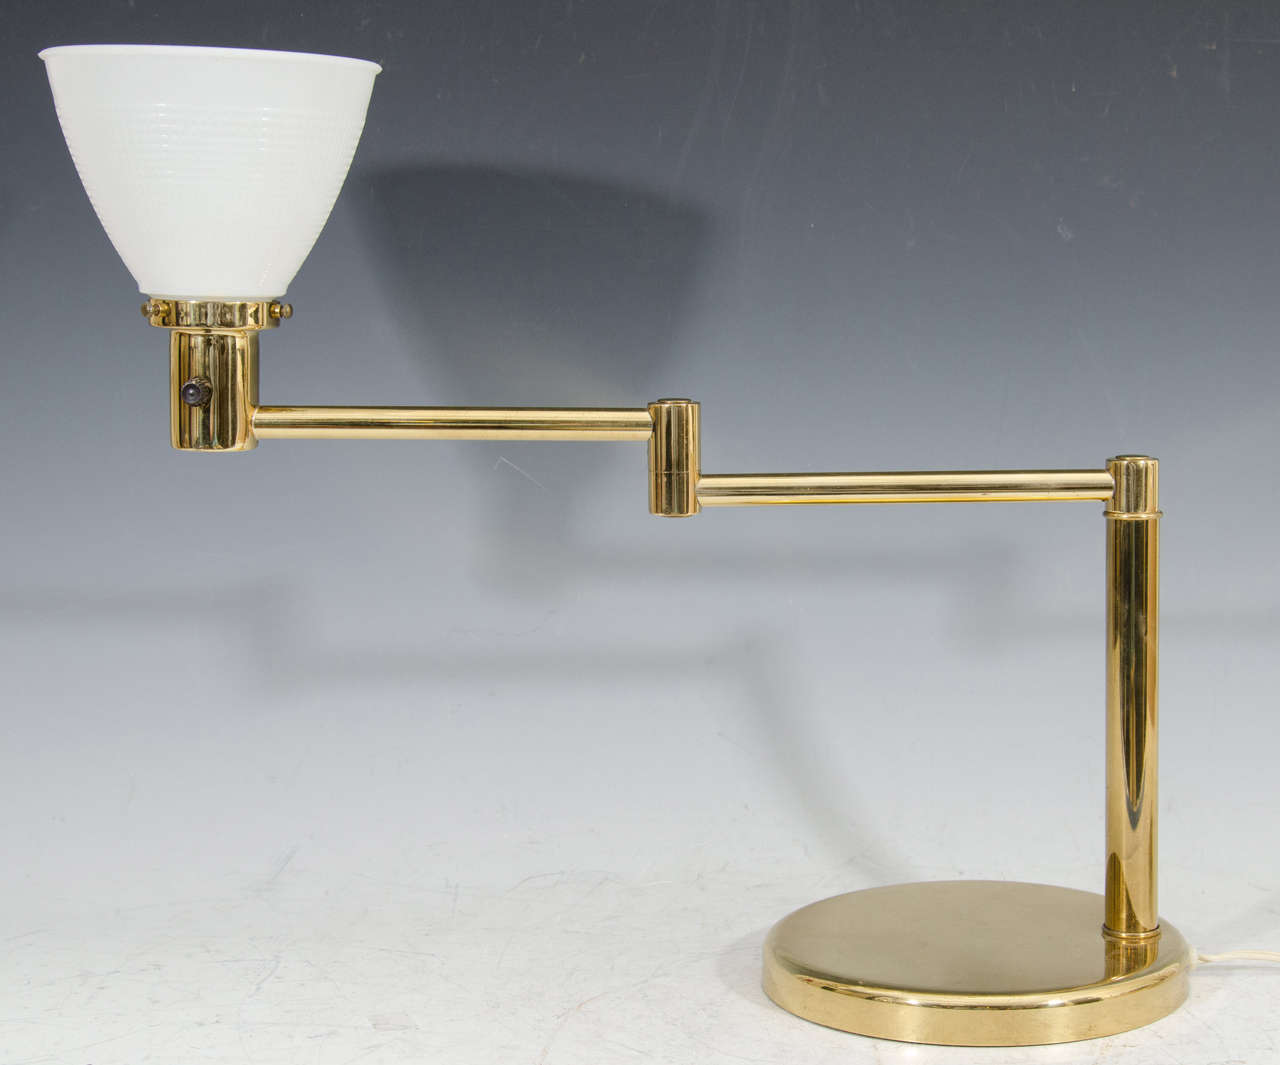 Modern brass desk or table lamp by walter von nessen ca 1970s for a 70s modern adjustable swing arm brass desk or table lamp with white milk glass aloadofball Images